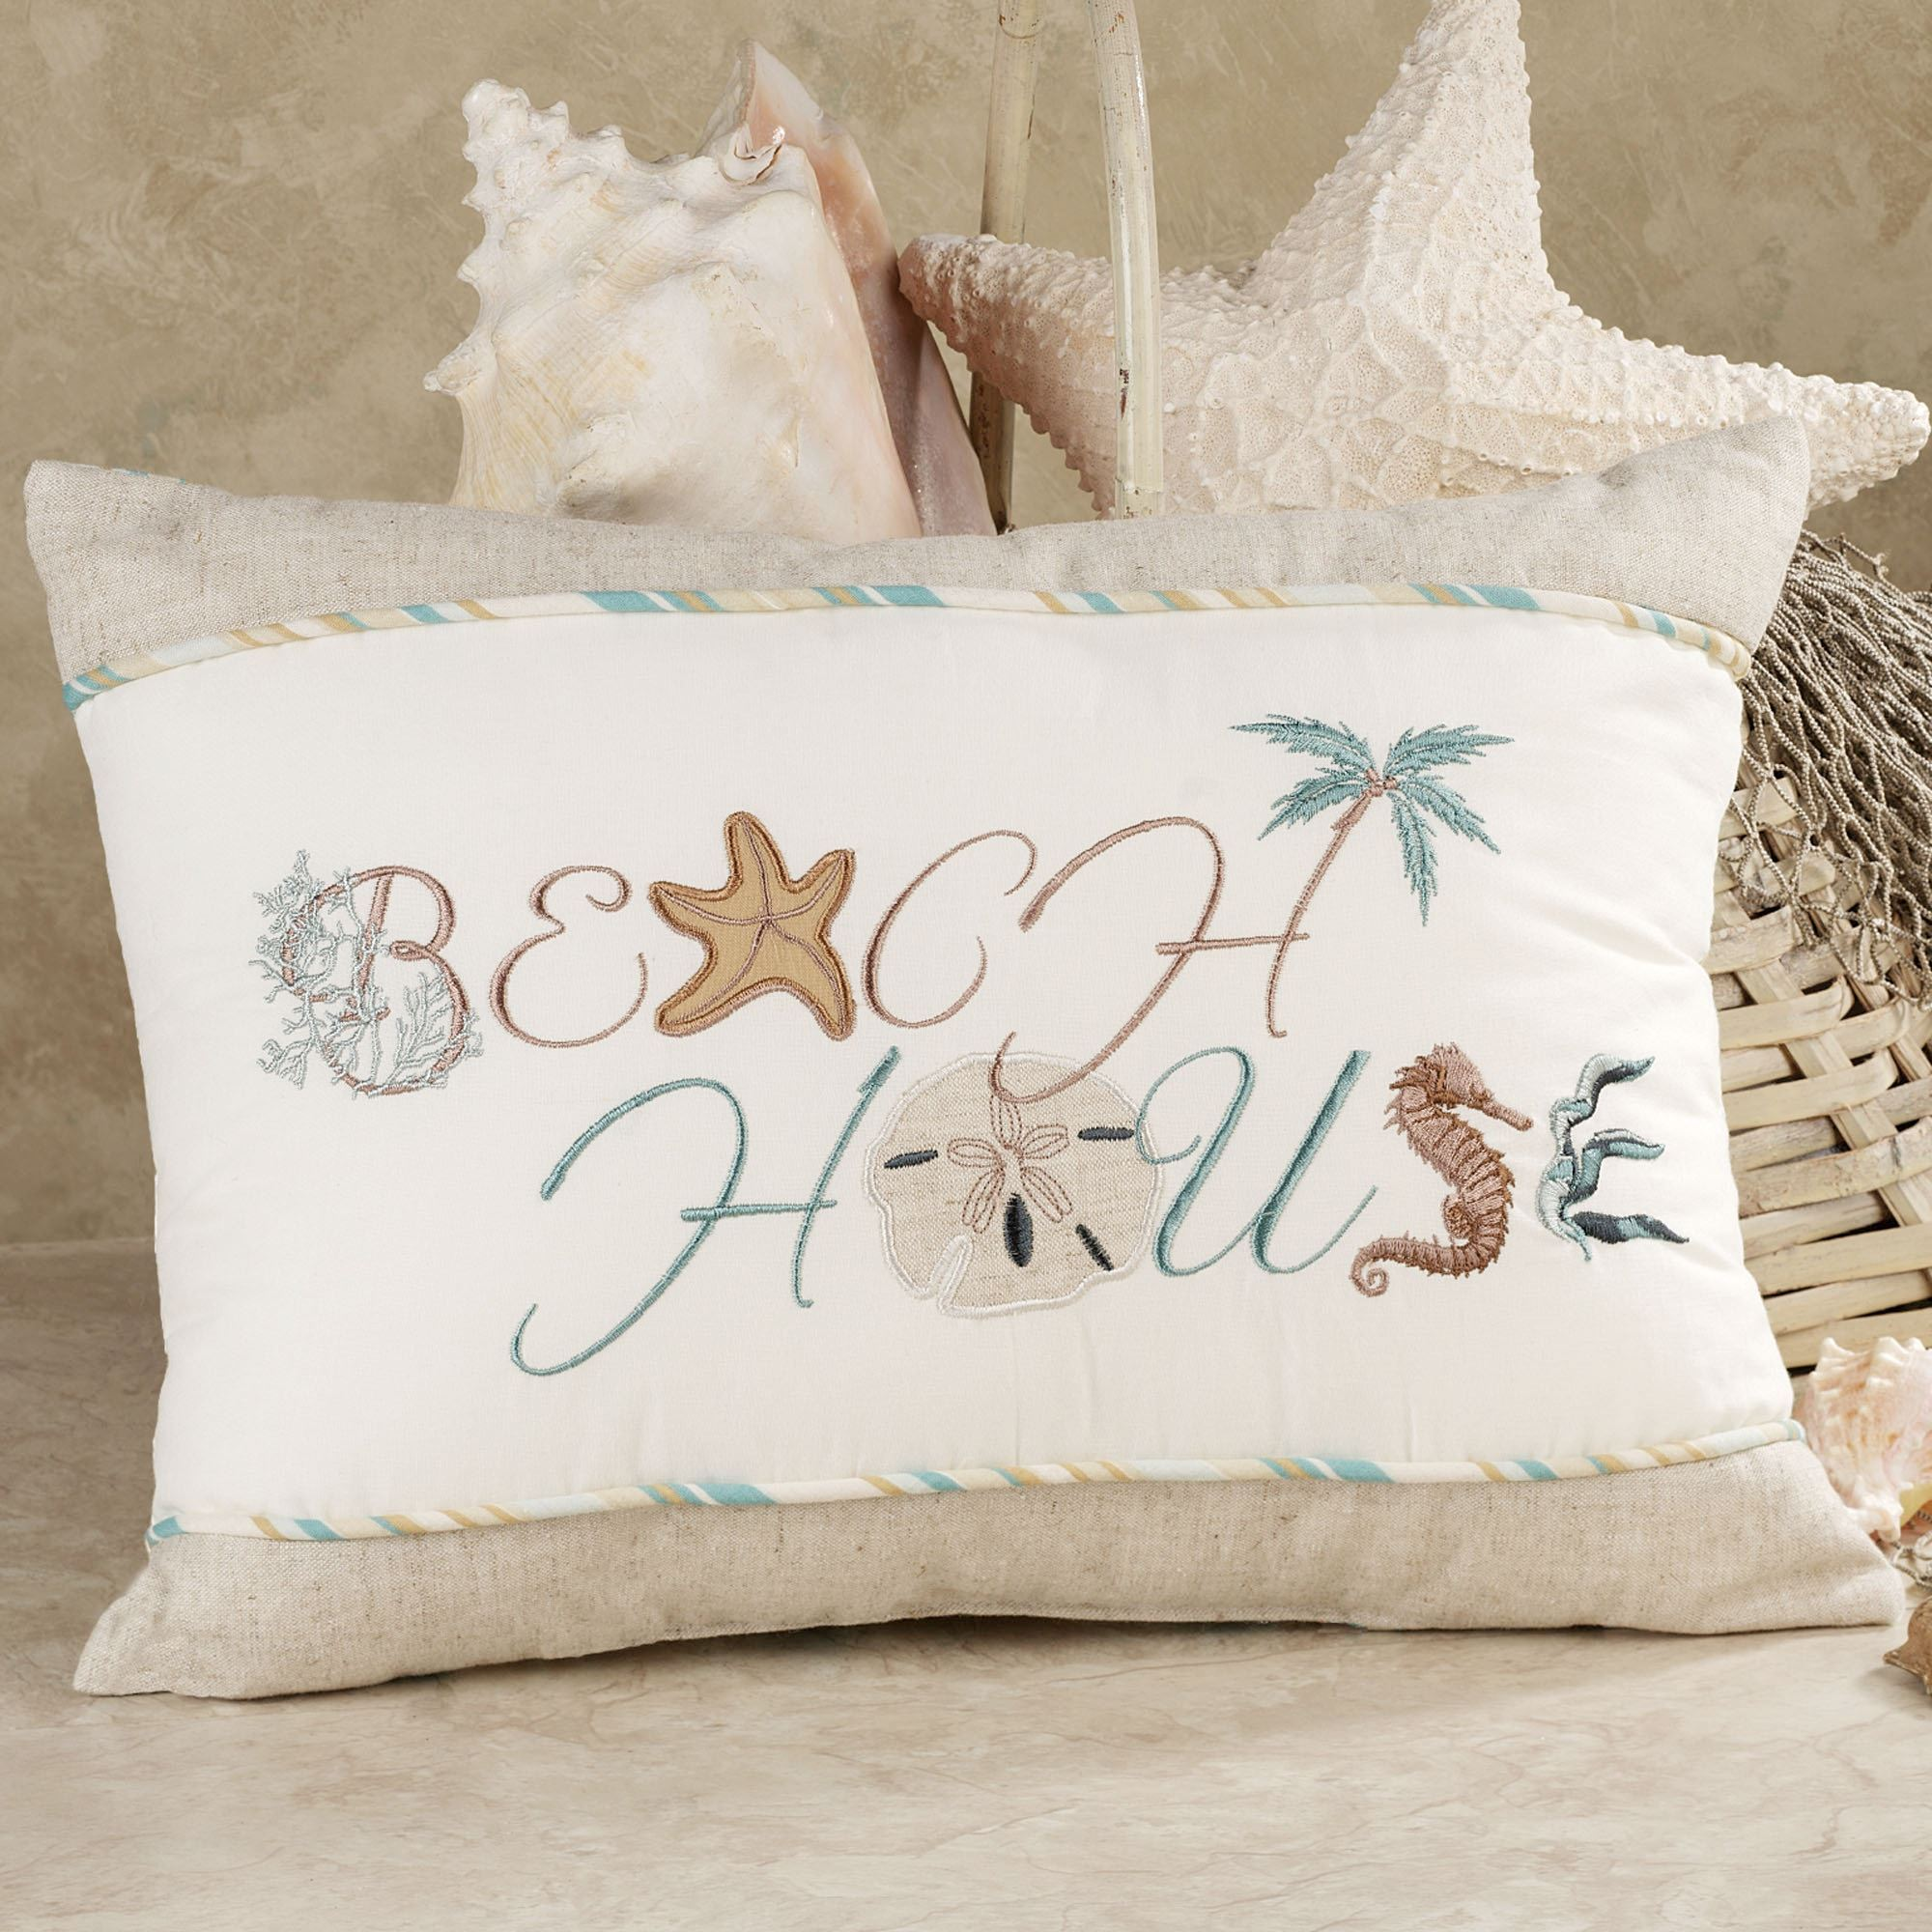 house housewarming pillow beach products homebrownbeachhouse pillows forever